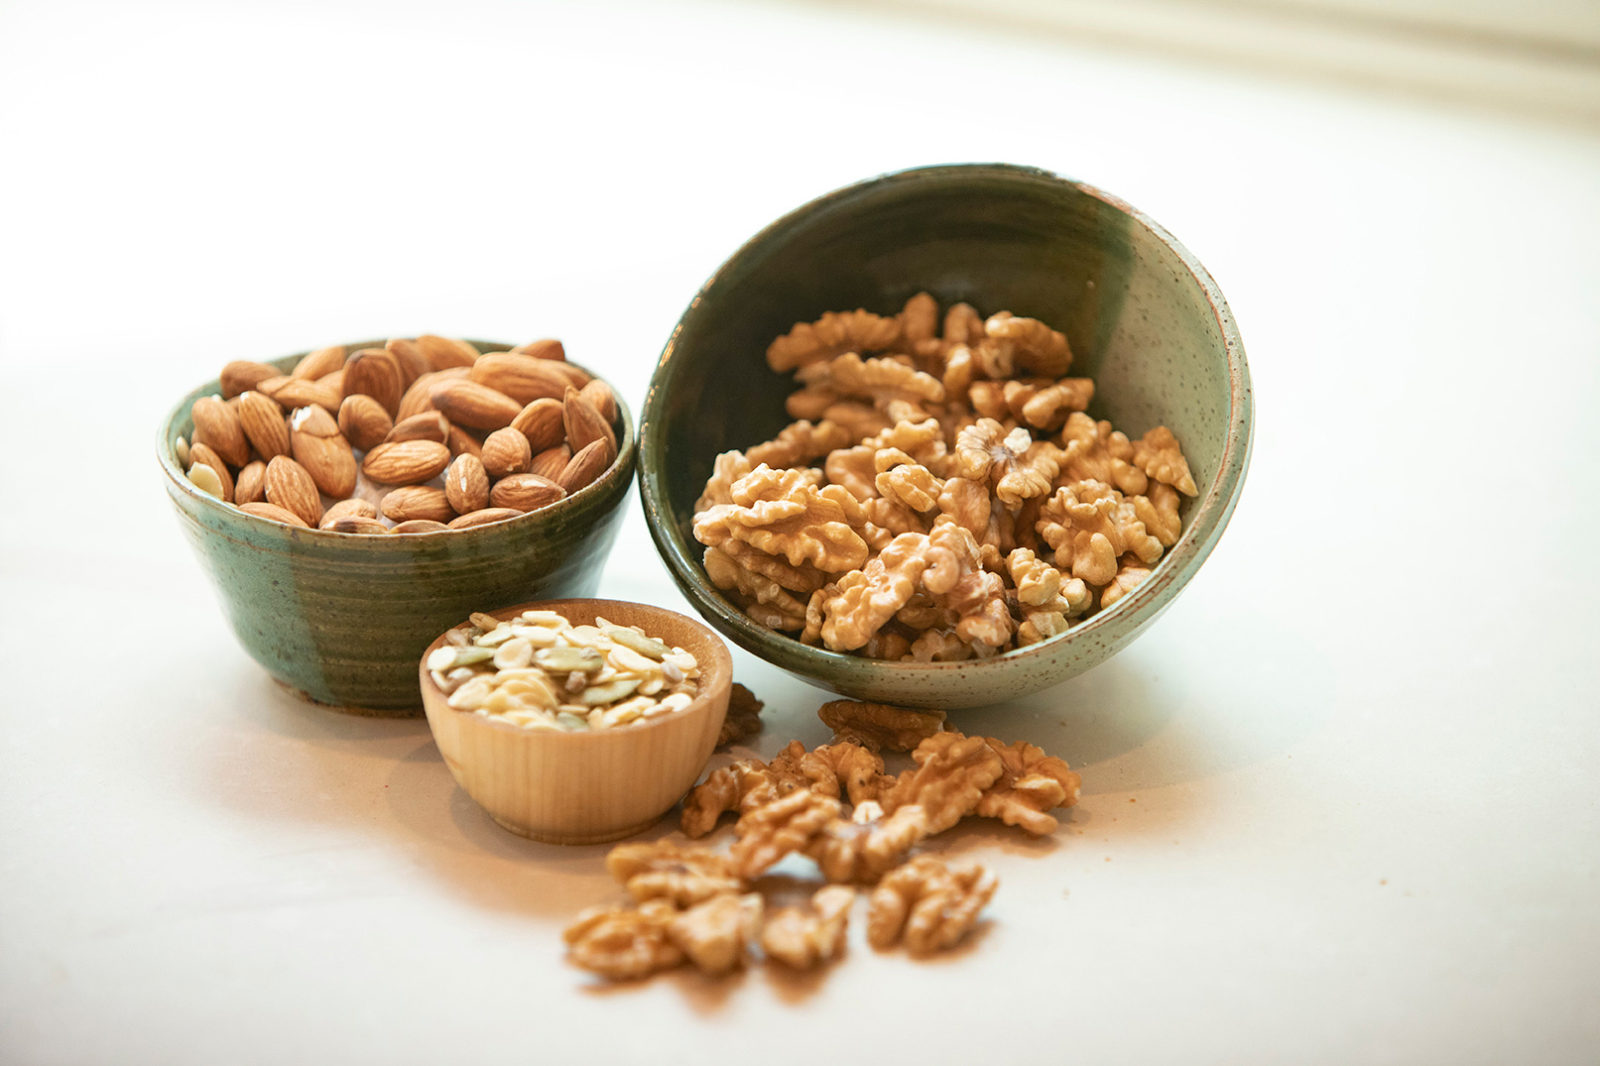 Mixed nuts and seeds in bowls